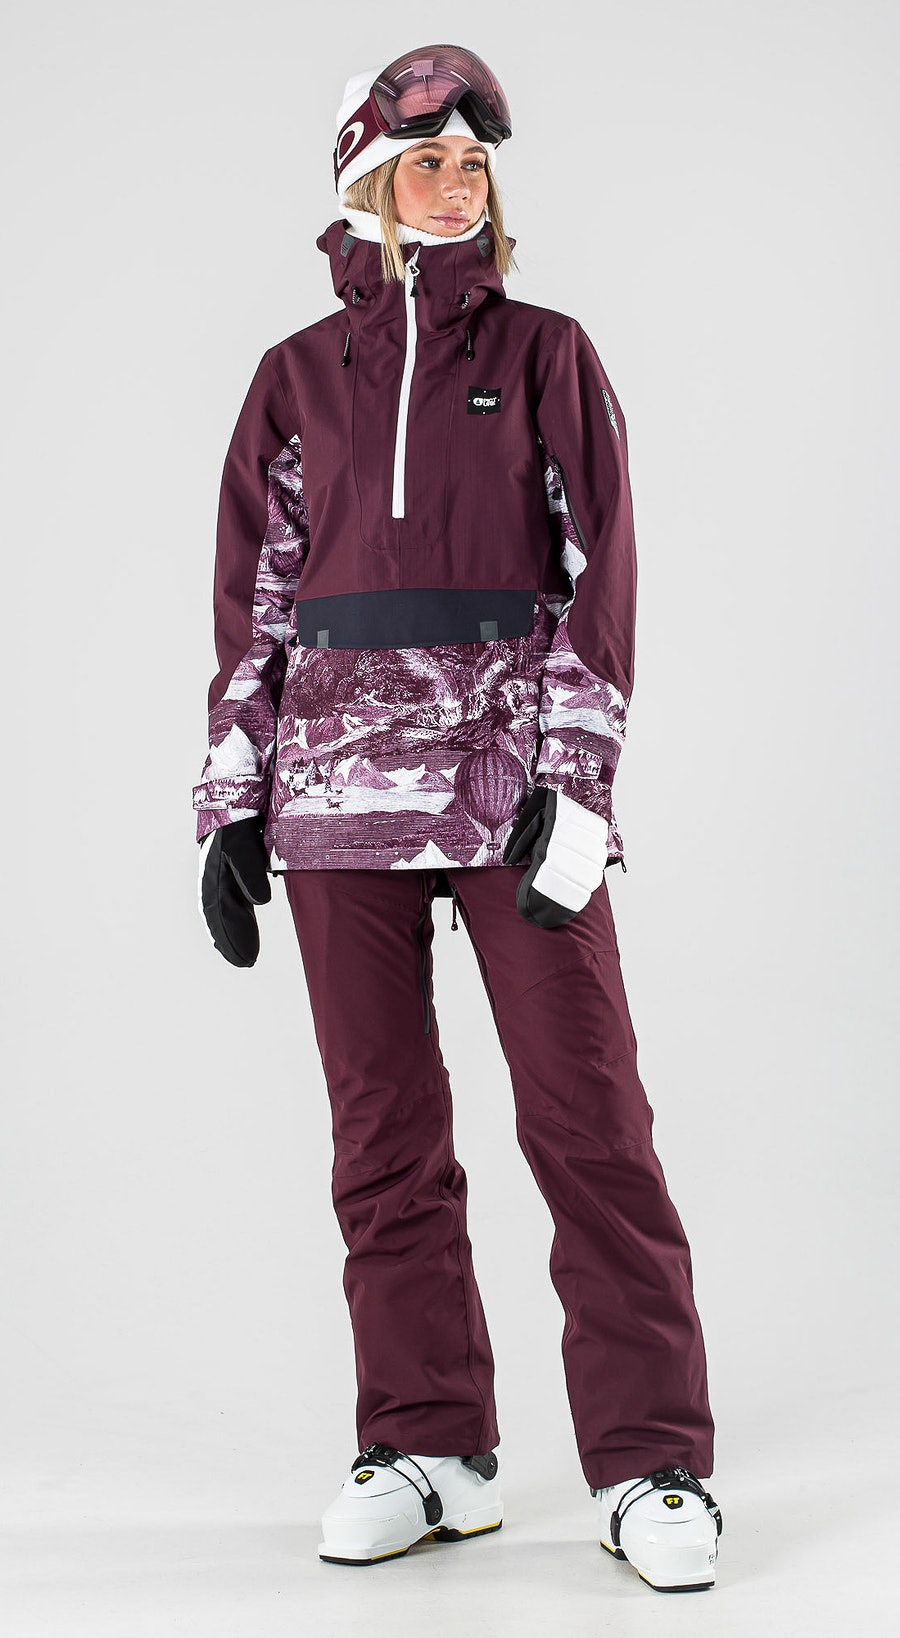 Picture Tanya Burgundy Ski Clothing Multi